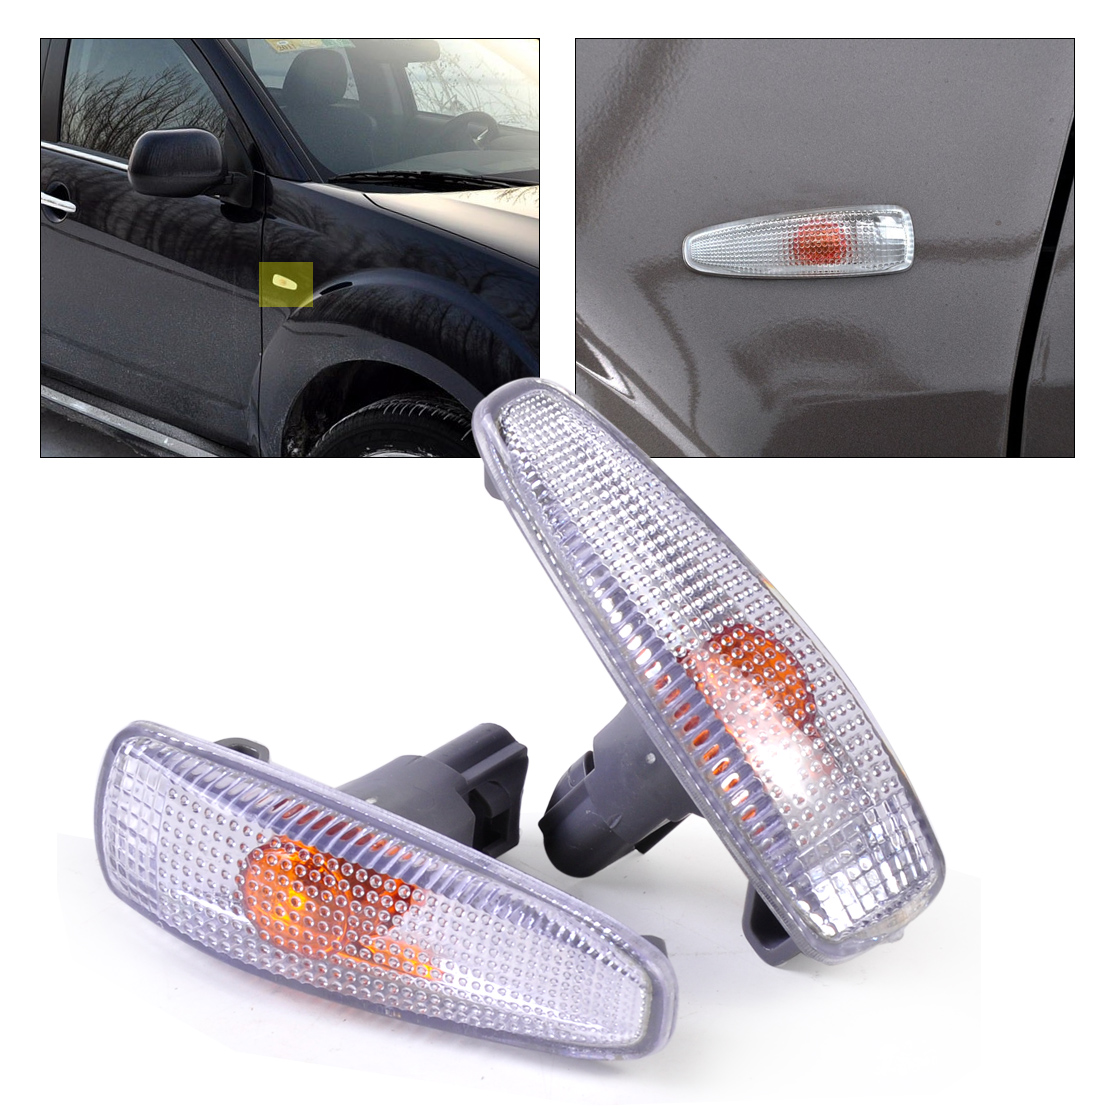 DWCX New 2Pcs Left & Right Turn Signal Lamp Lights Fender Side 8351A047 for Mitsubishi Lancer 2008 2009 2010 2011 2012 2013 2014 2pcs right